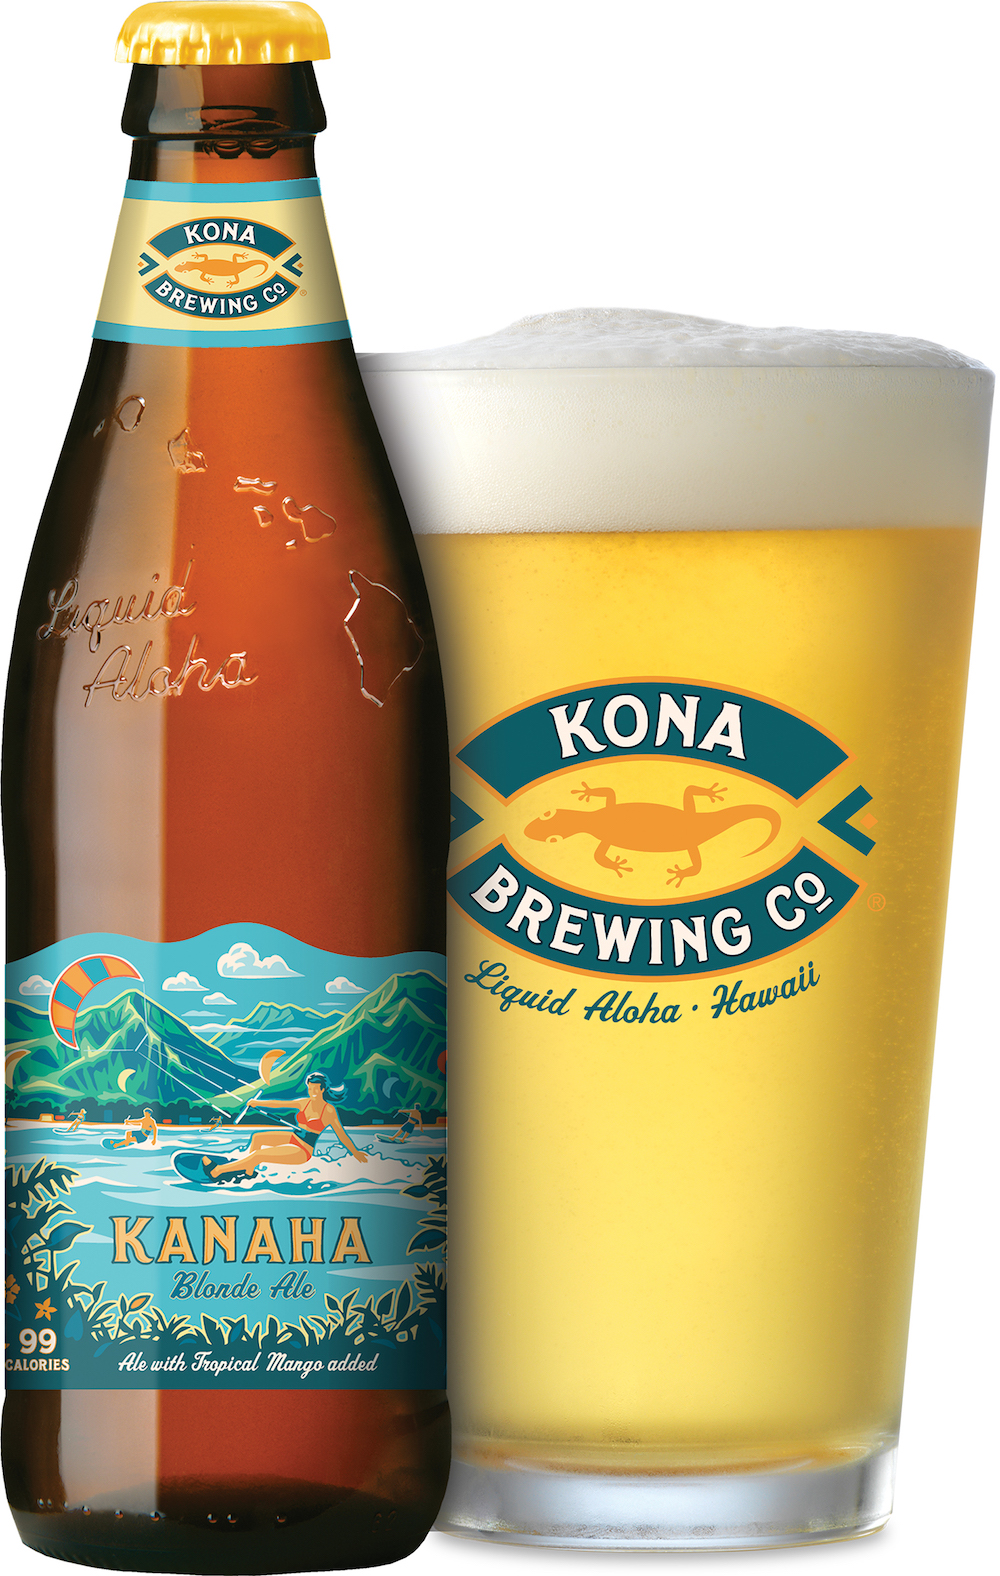 Kona Brewing Company Announced Nationwide Availability for Kanaha Blonde Ale